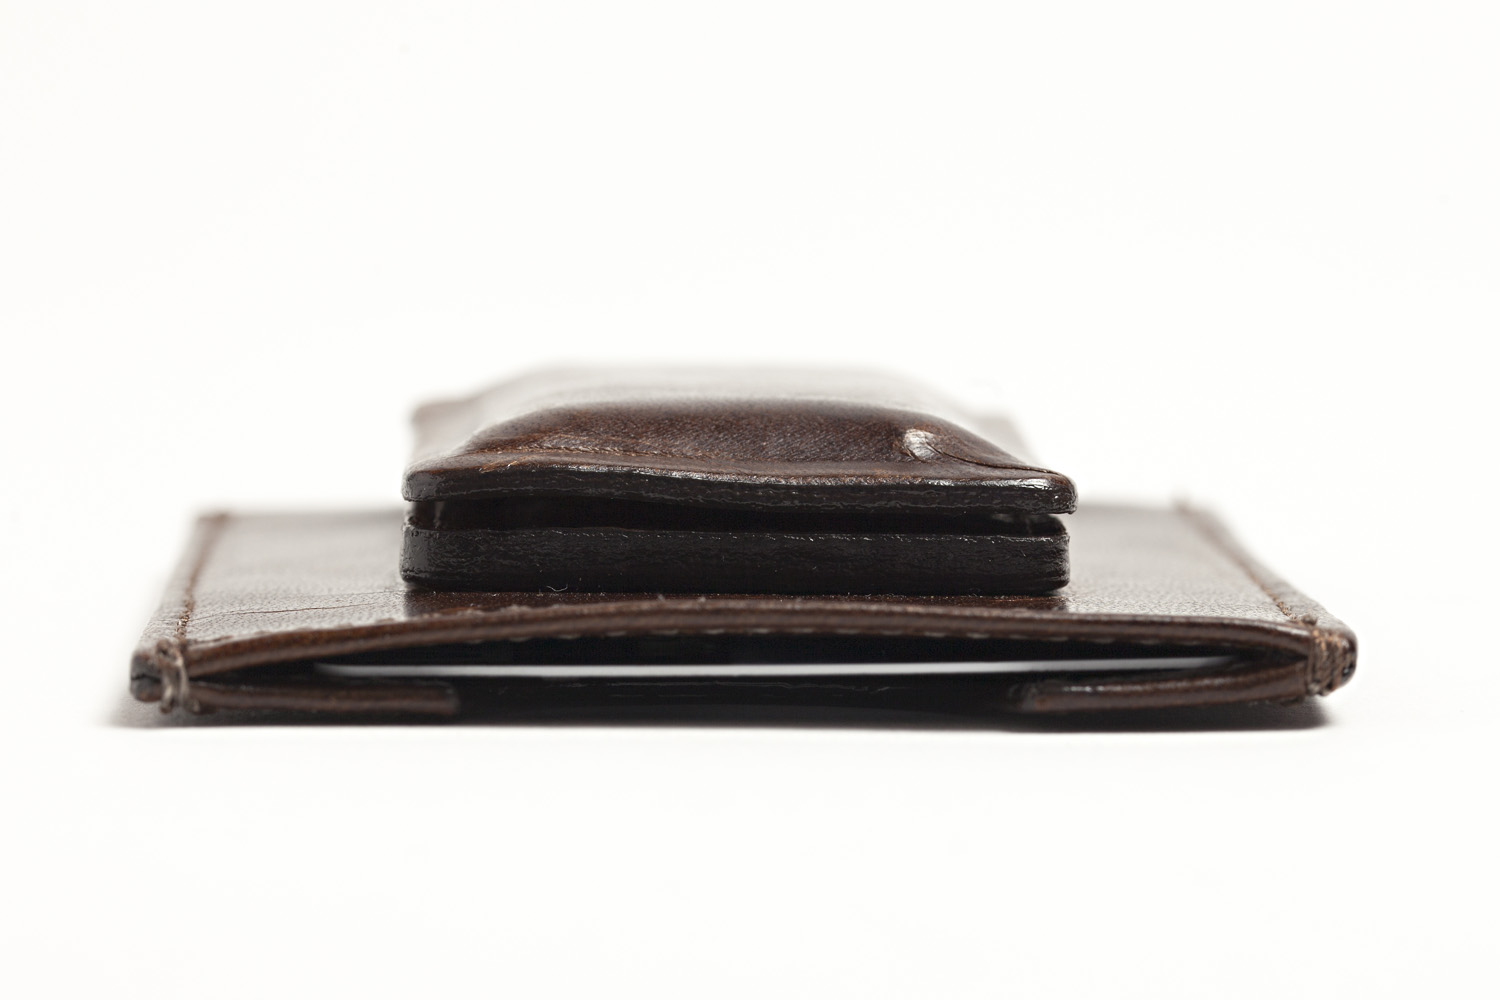 FAQ: Will the magnets on some wallets demagnetize my credit